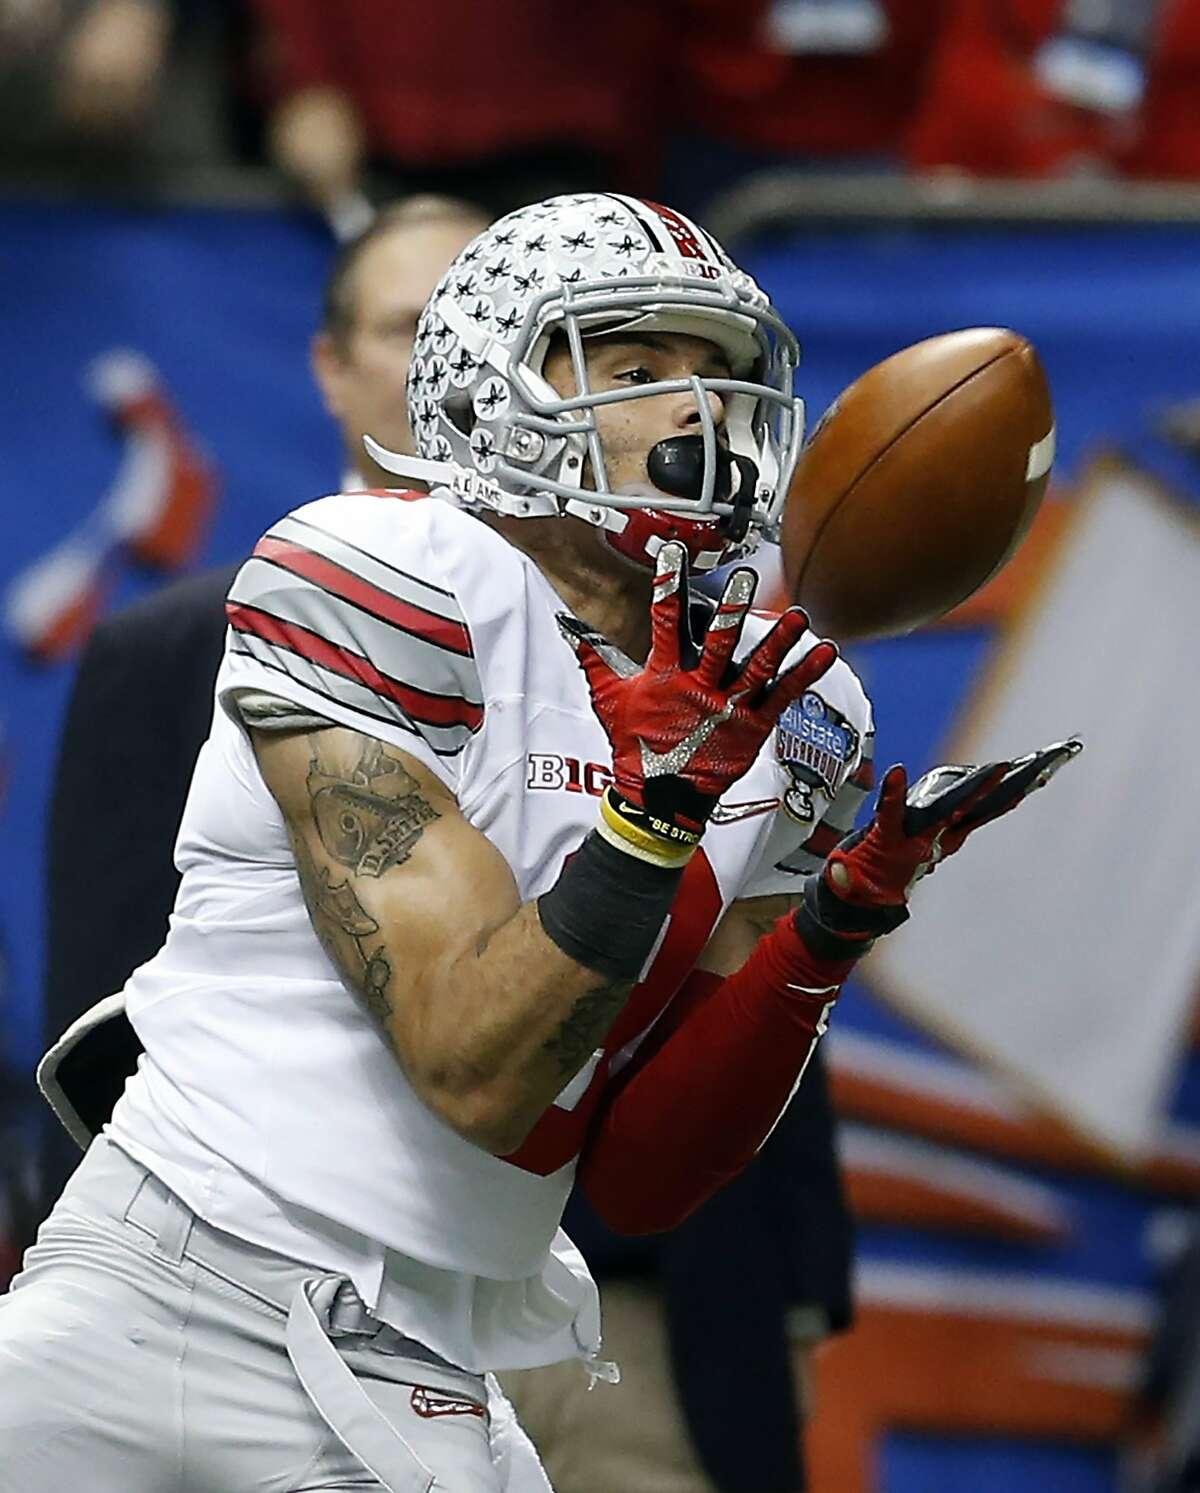 Ohio State wide receiver Devin Smith (9) catches a pass for a touchdown in the second half of an NCAA college football game against Alabama Thursday, Jan. 1, 2015, in New Orleans, La. (AP Photo/Butch Dill)